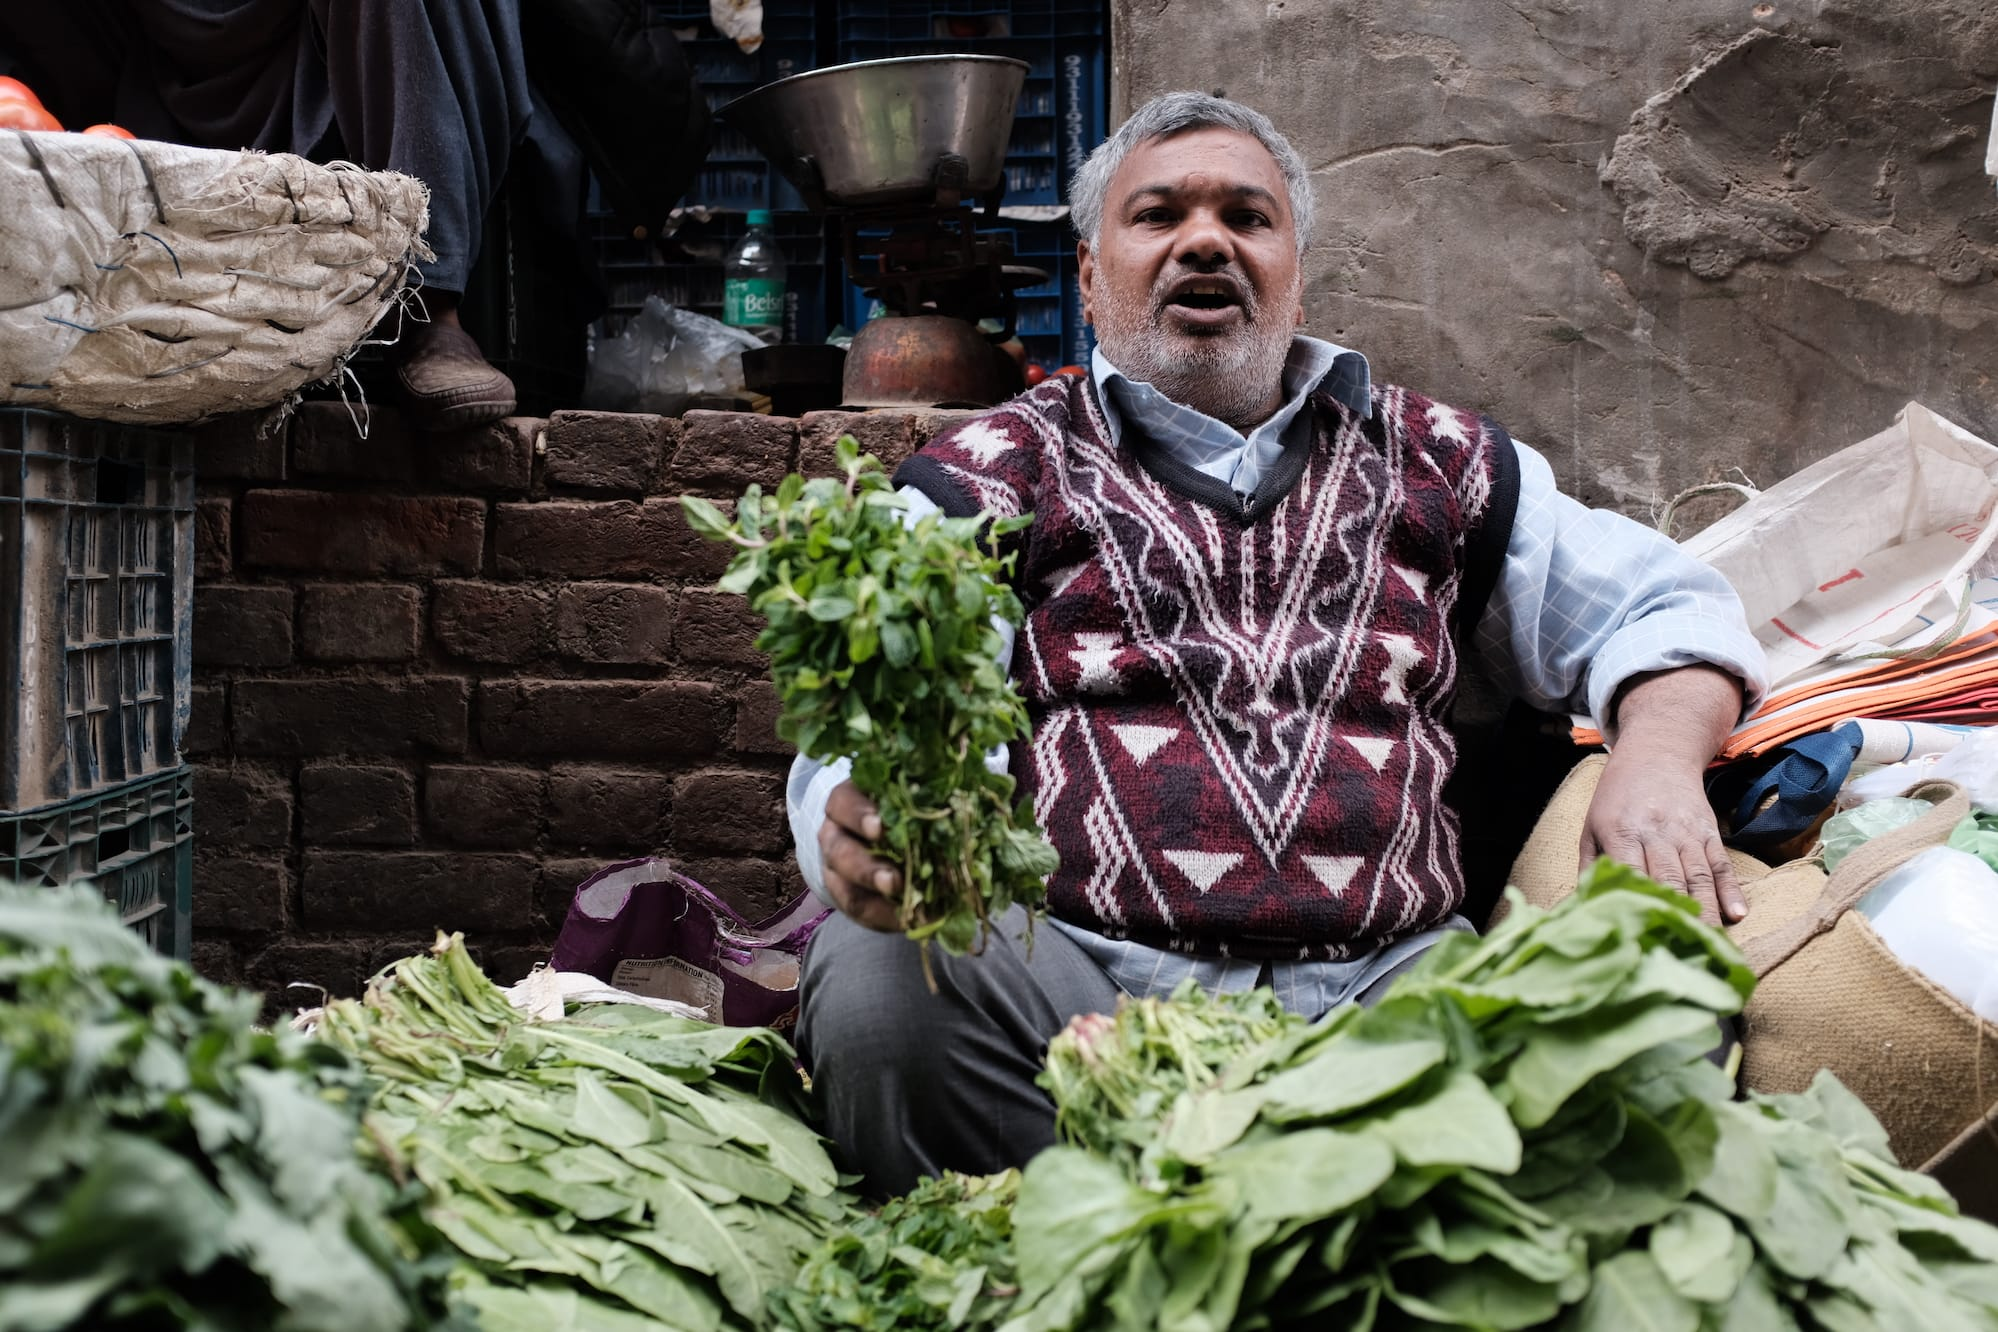 A Vendor at a Vegetable Market in Old Delhi